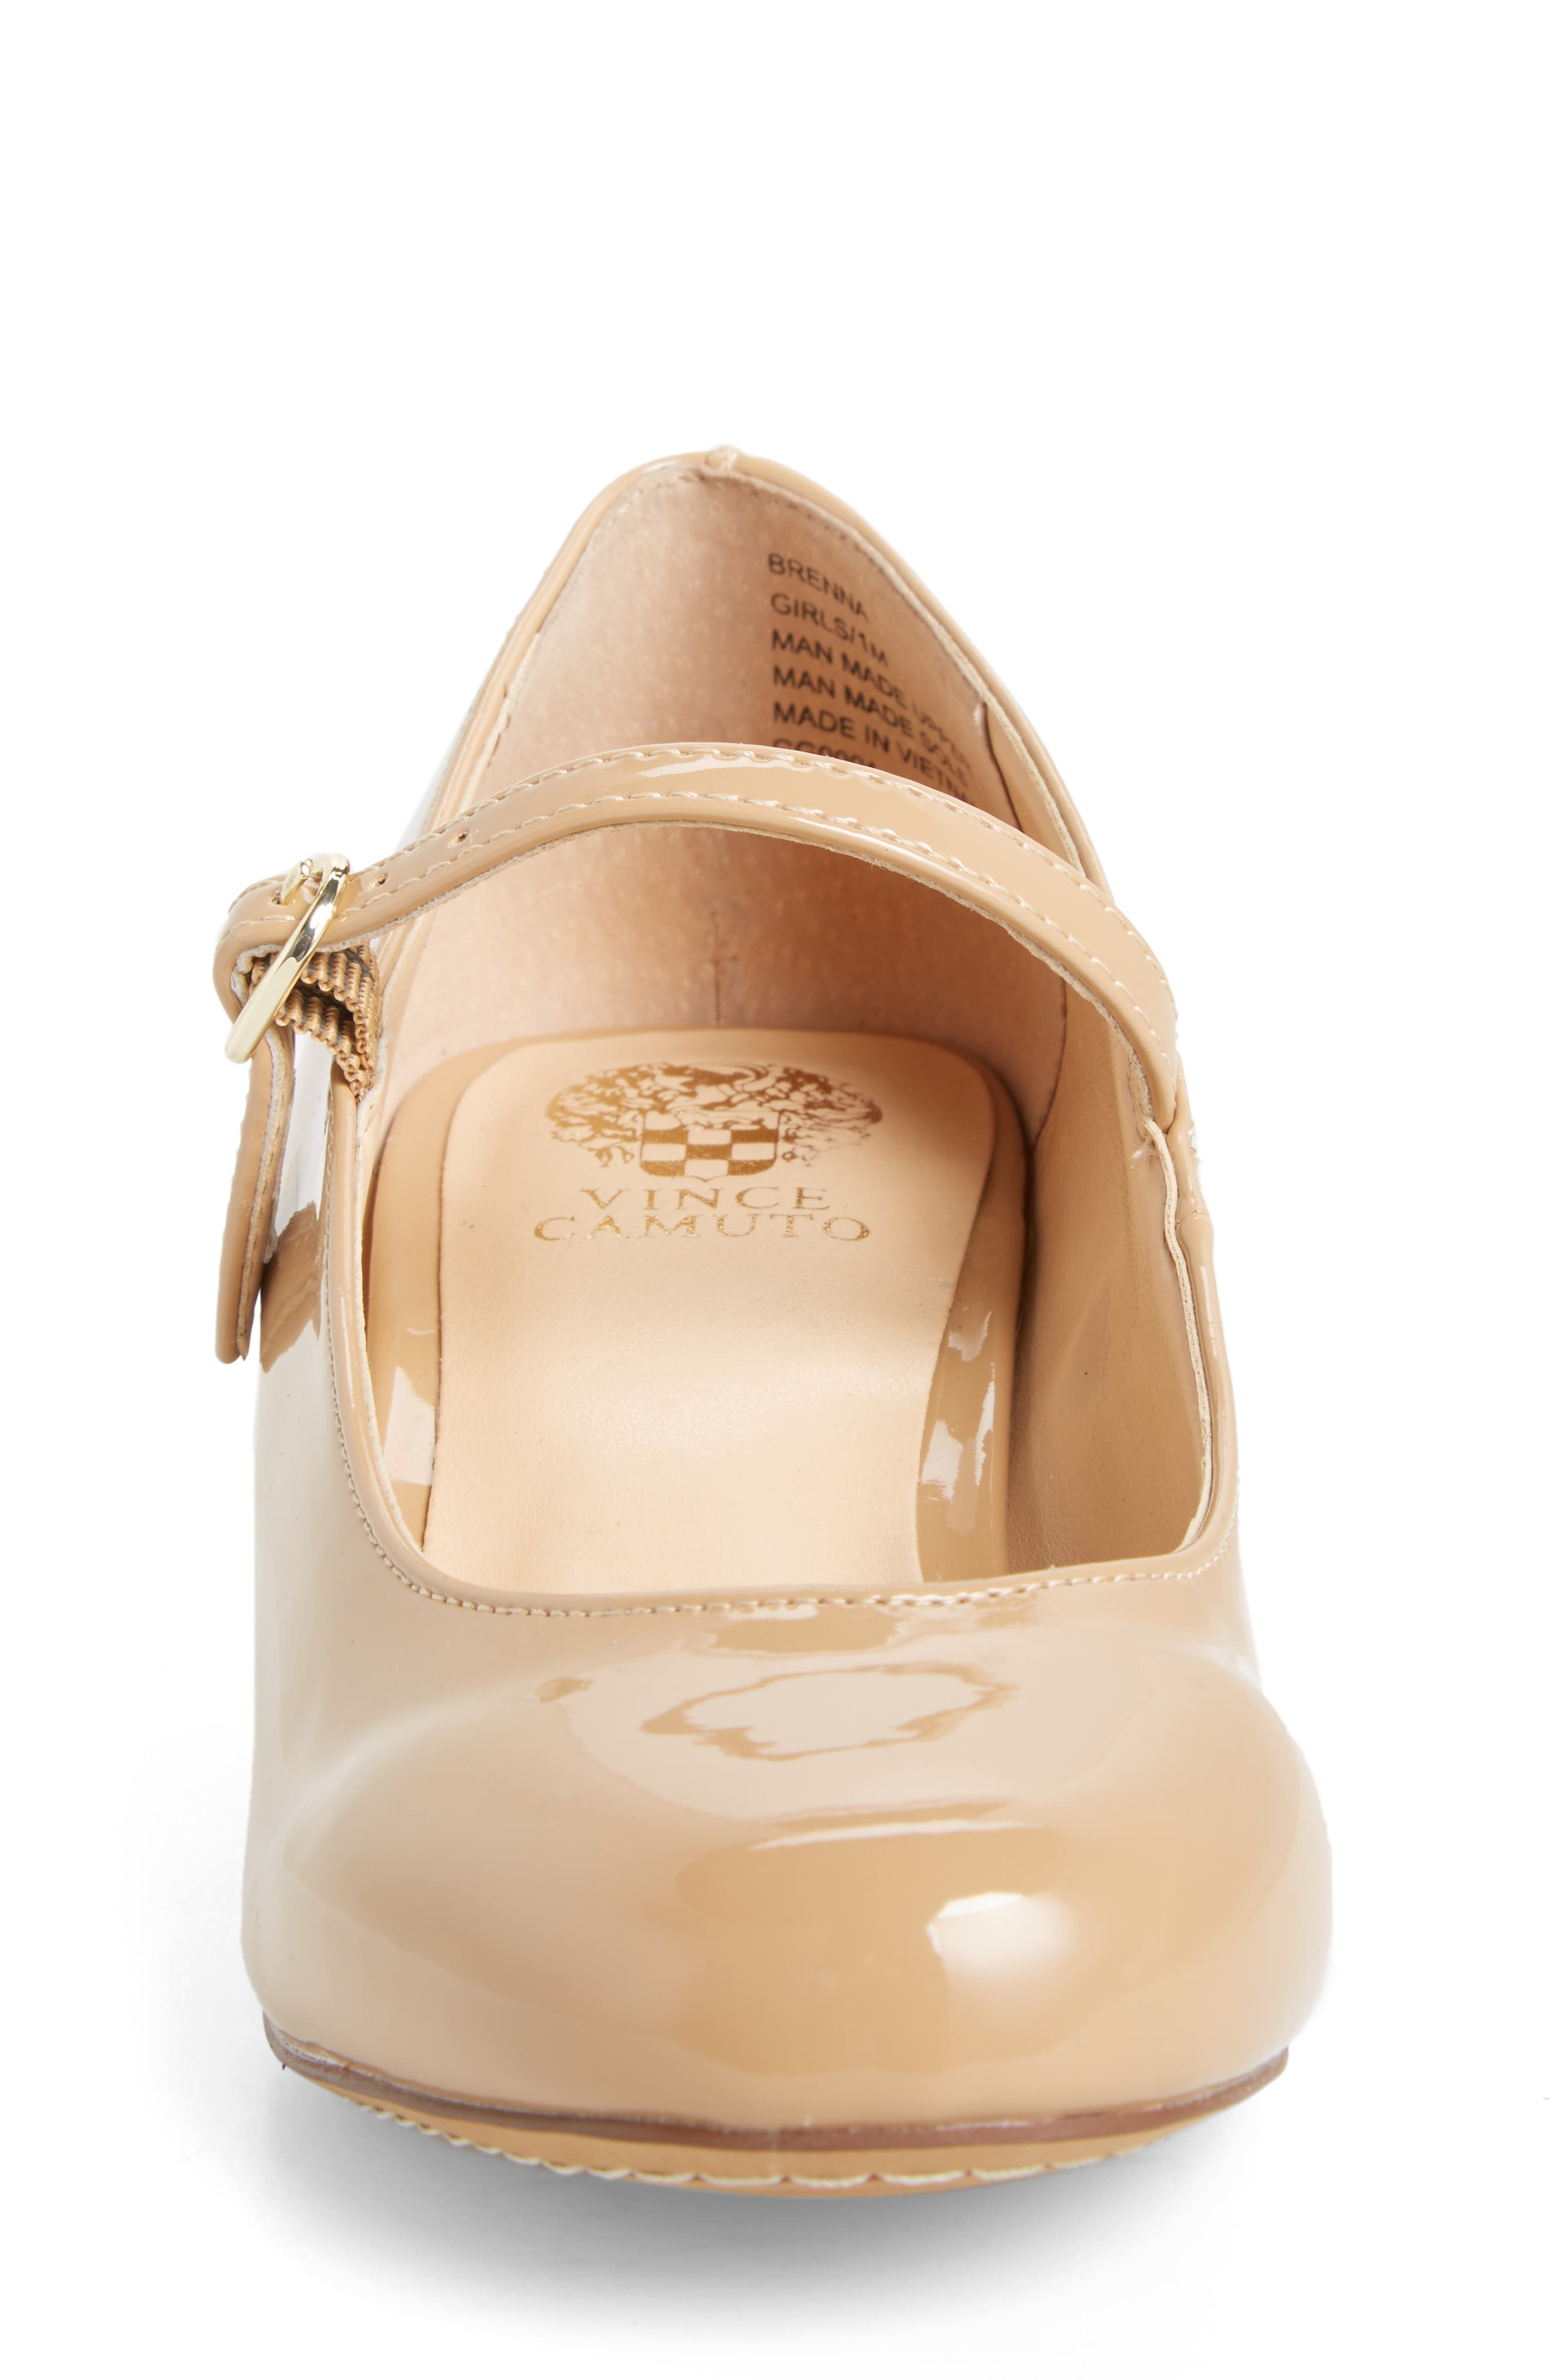 Brenna Mary Jane Pump,                             Alternate thumbnail 3, color,                             NUDE PATENT